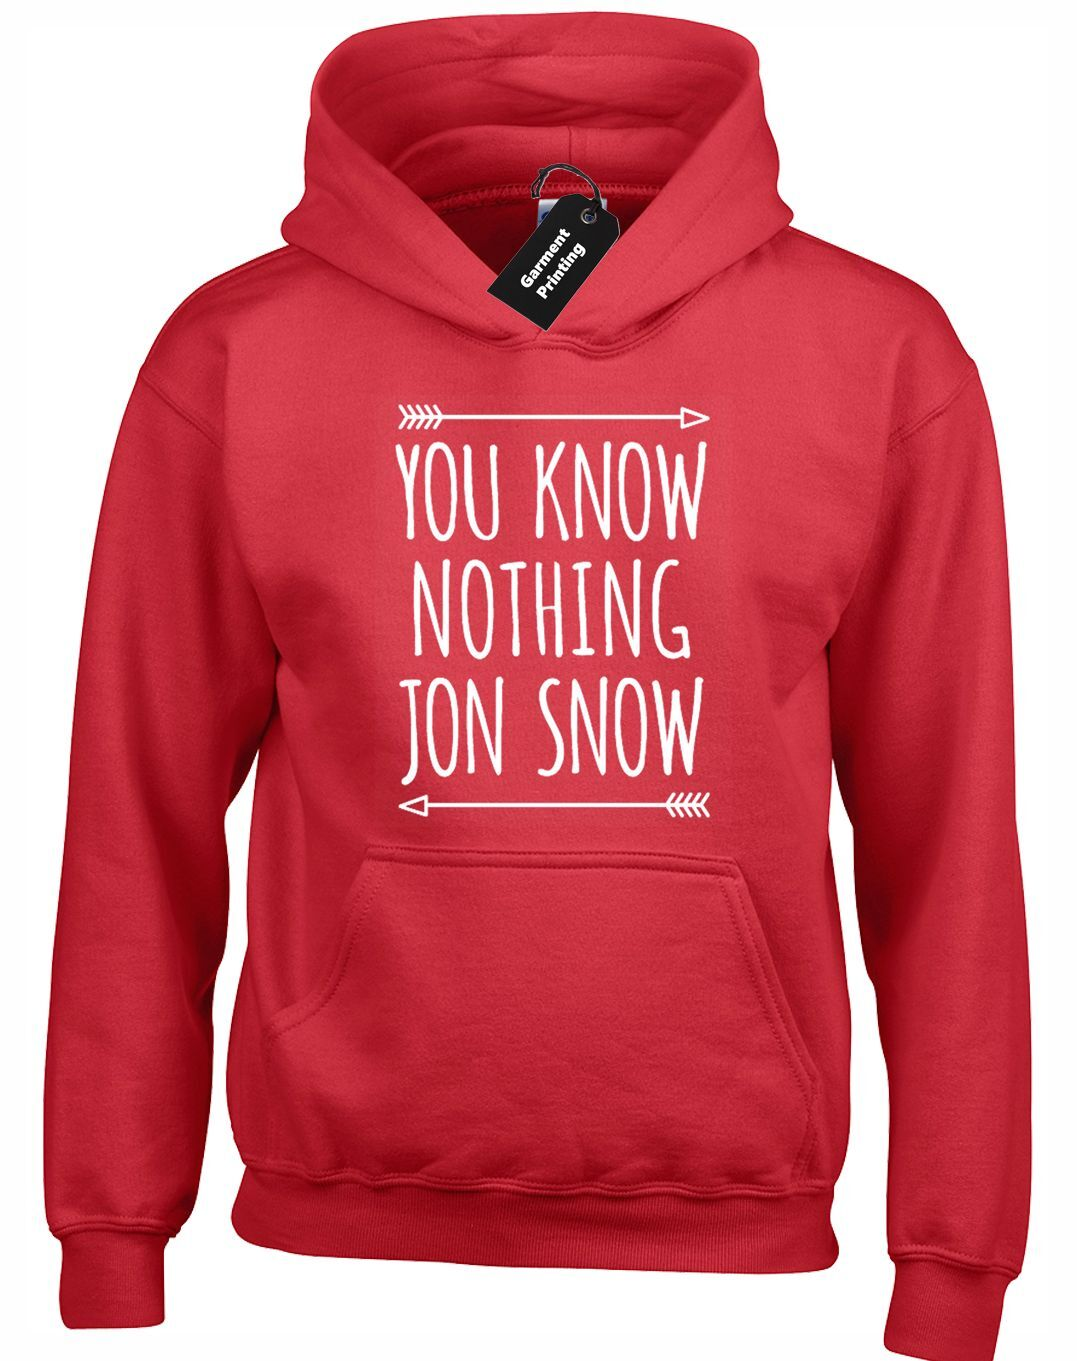 THERE IS ONLY ONE GOD HOODY HOODIE GAME OF ARYA JON SNOW THRONES DEATH TYRION